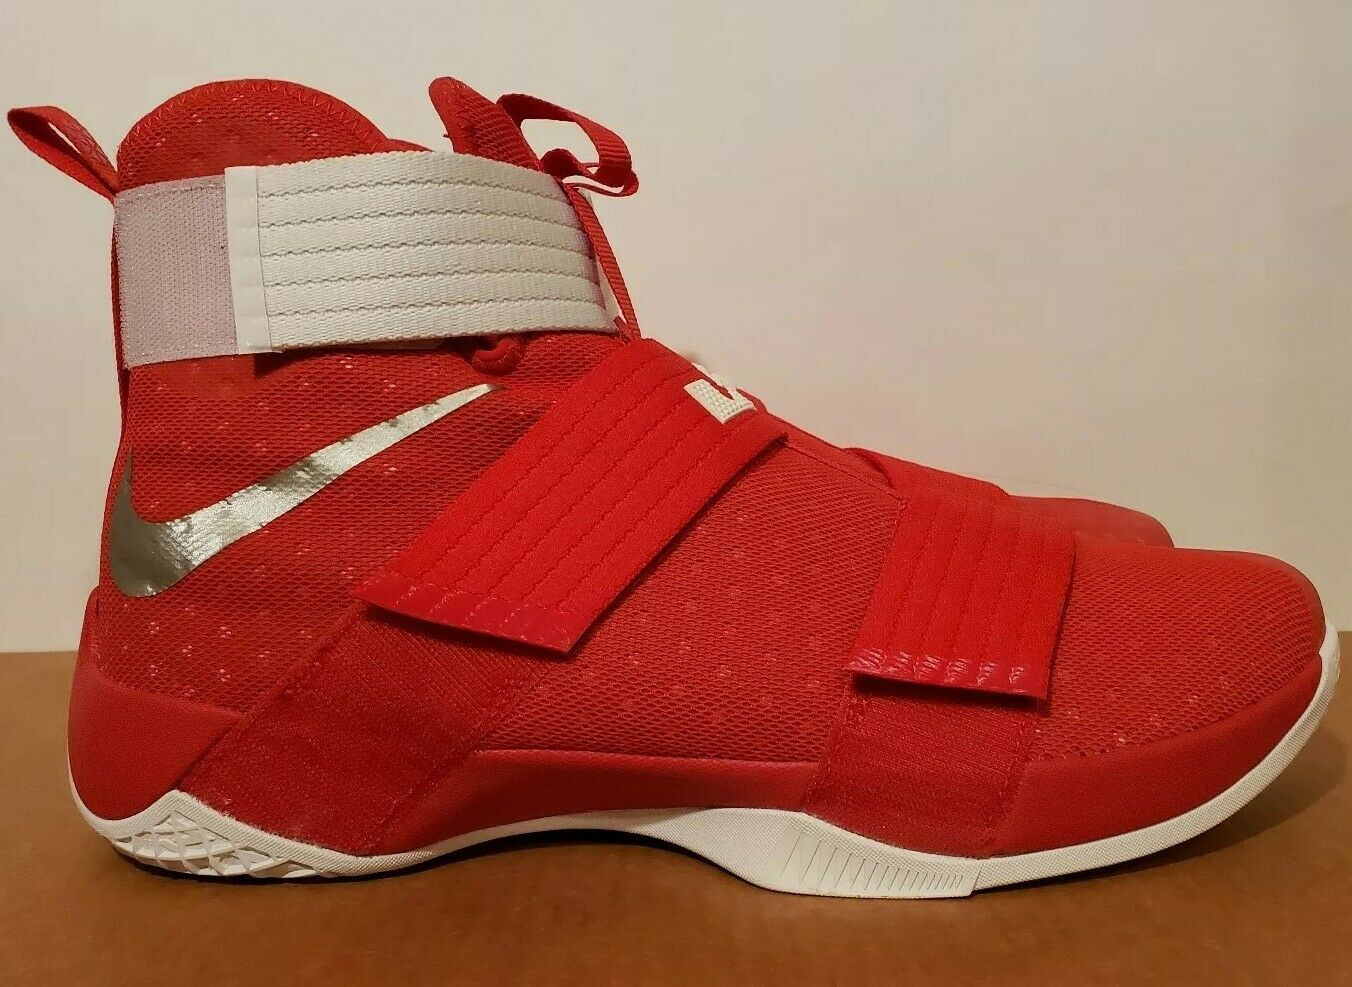 Size 14 NIKE LEBRON SOLDIER 10 X TB PROMO GYM RED basketball BRAND NEW ohio max